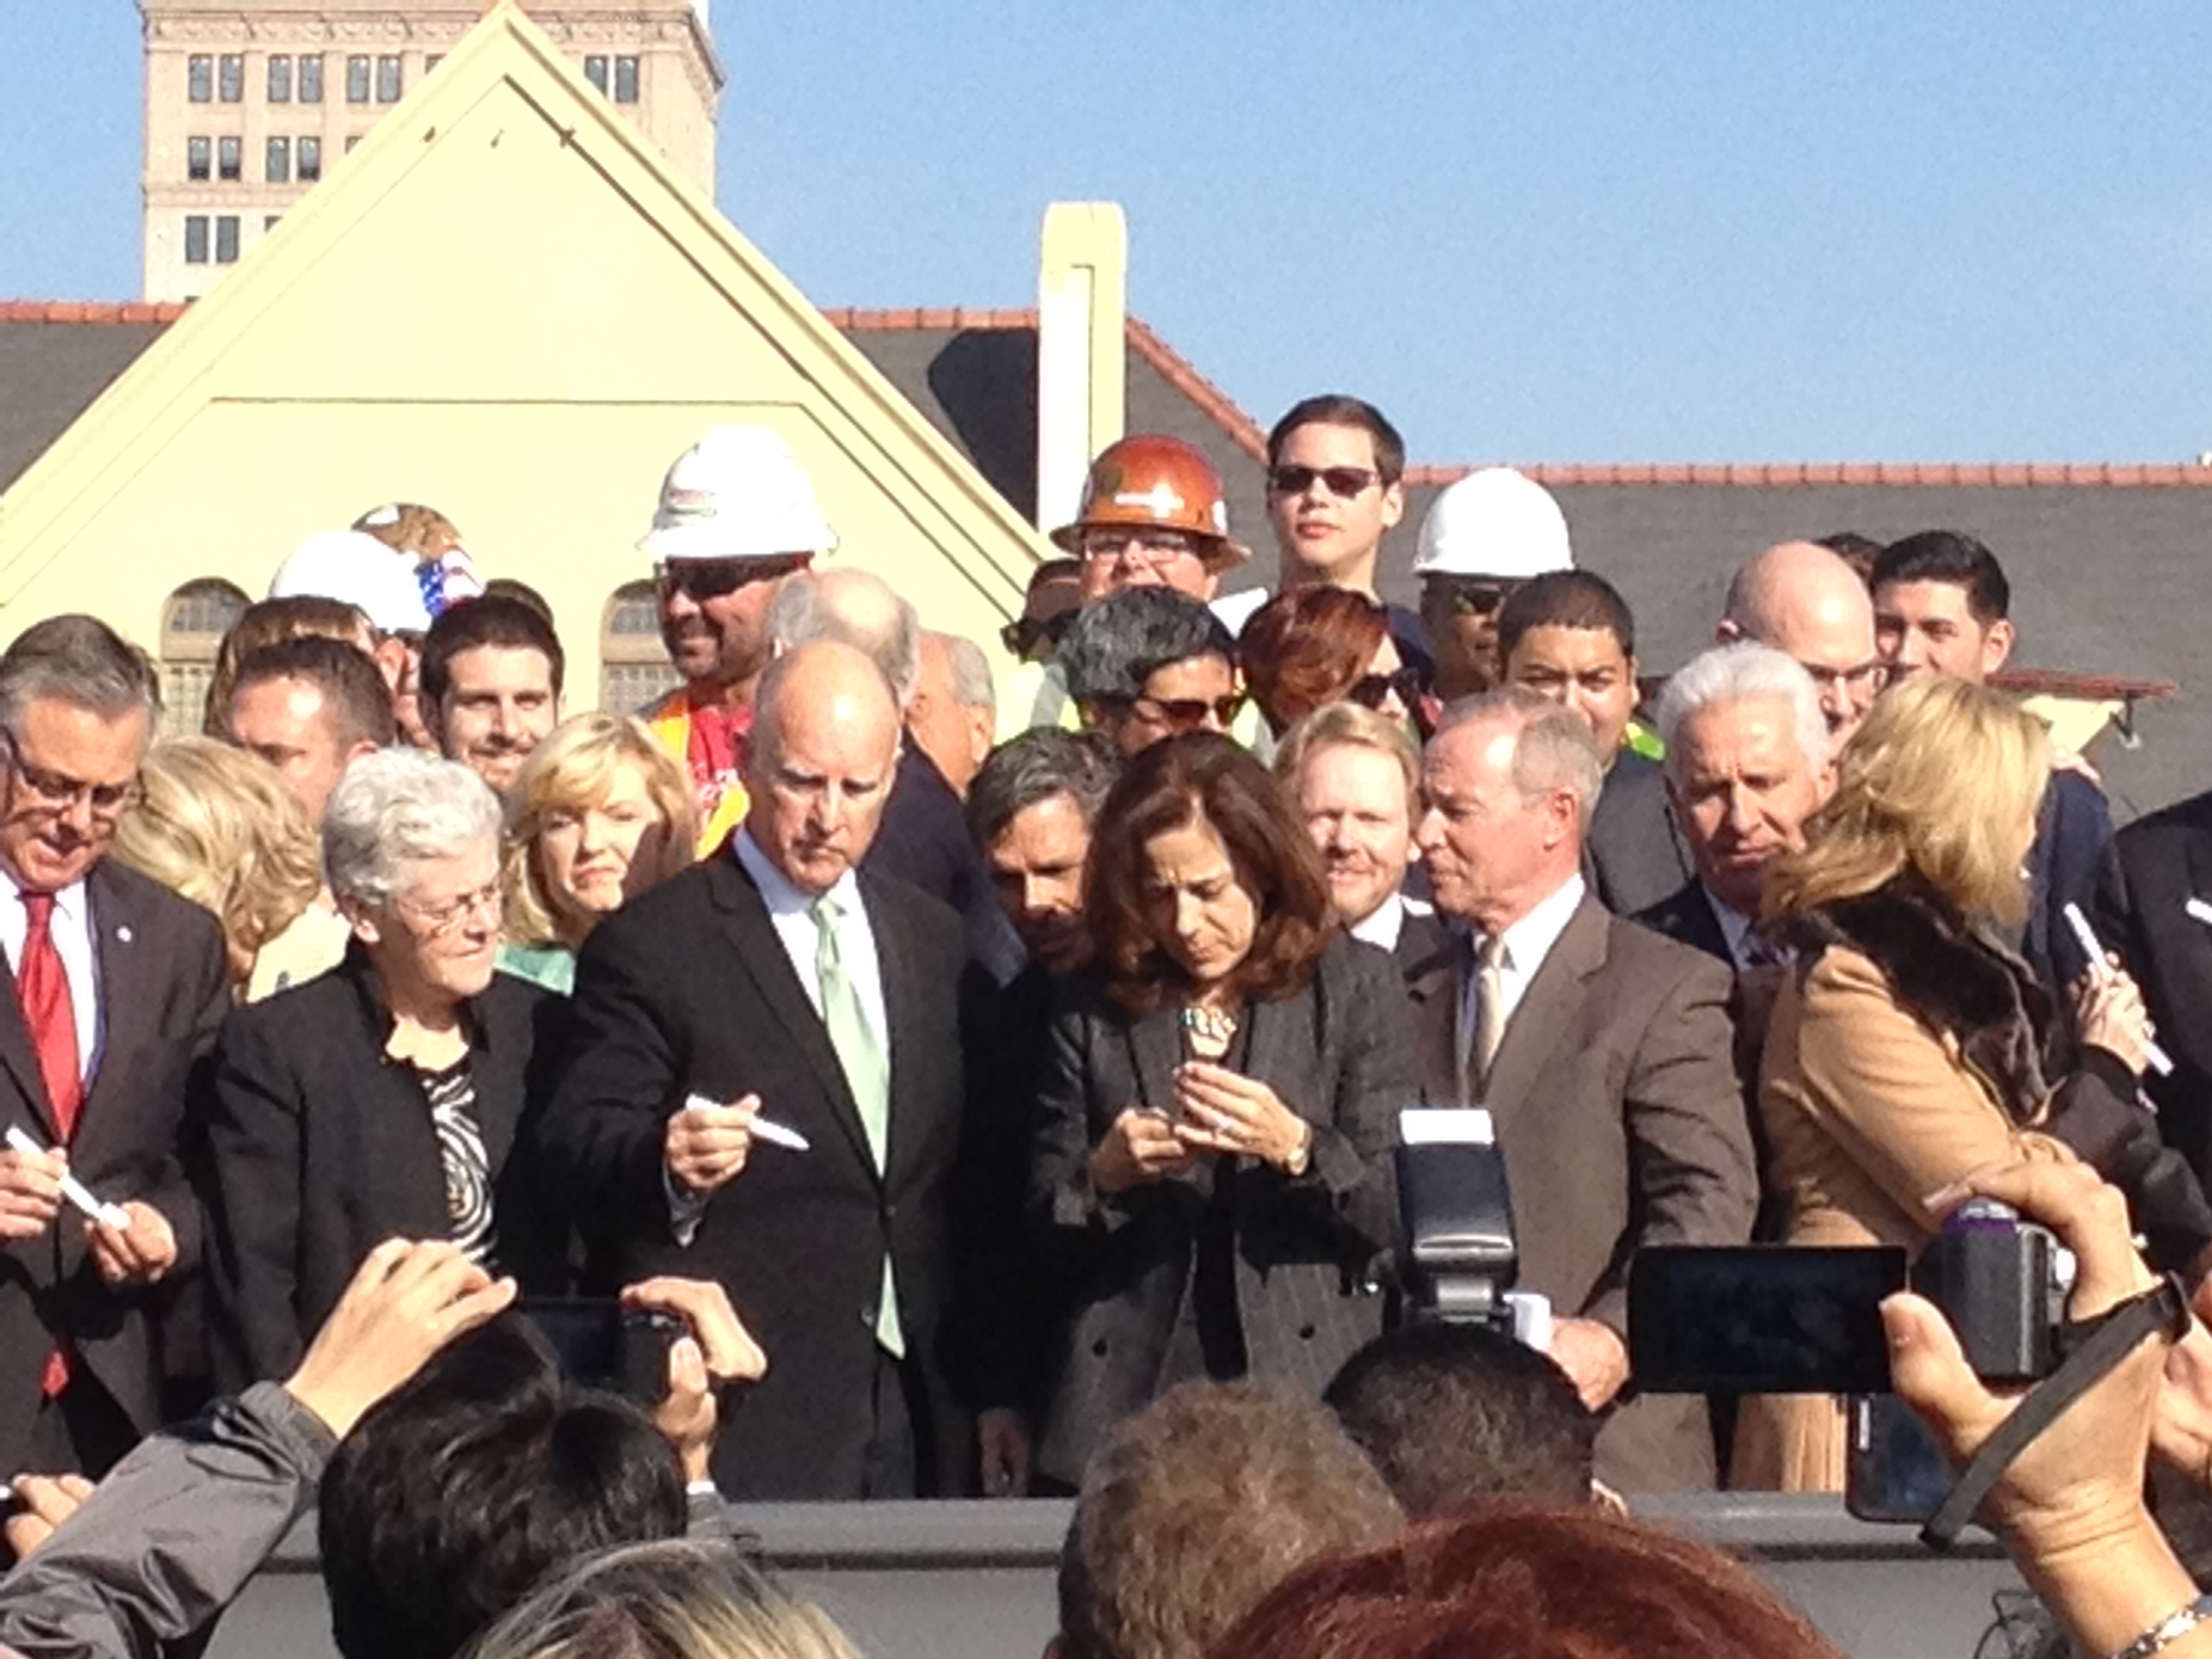 The Governor Signing the Symbolic Rail